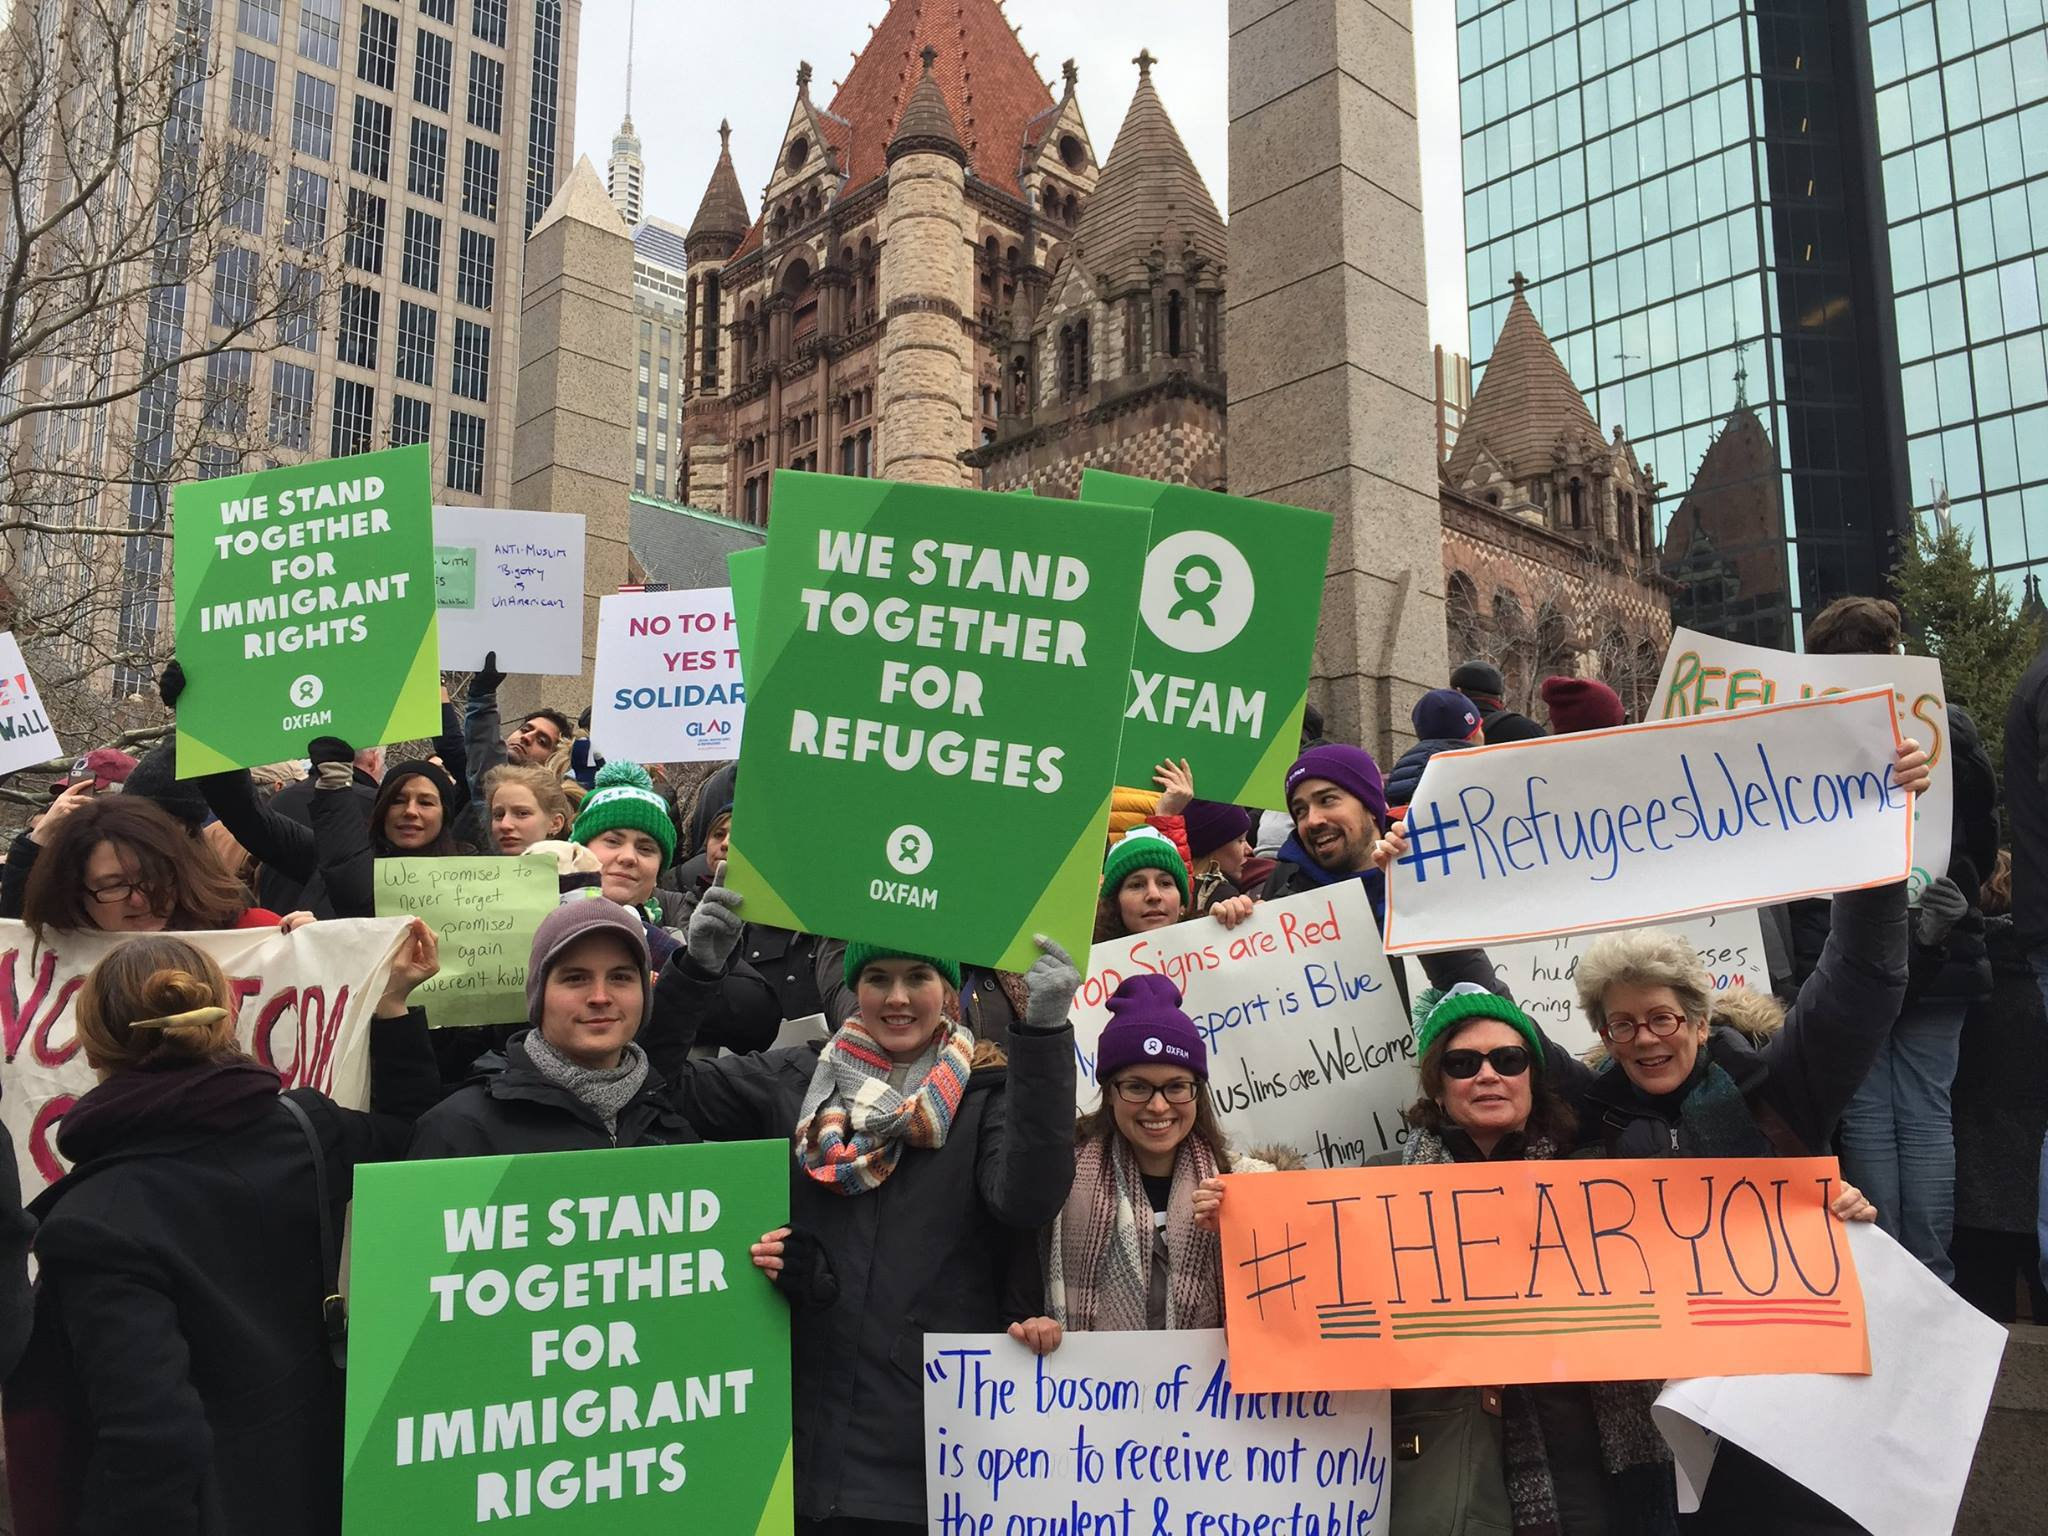 Activists protesting the executive order barring refugees from the US on Sunday, January 29 in Boston's Copley Square.